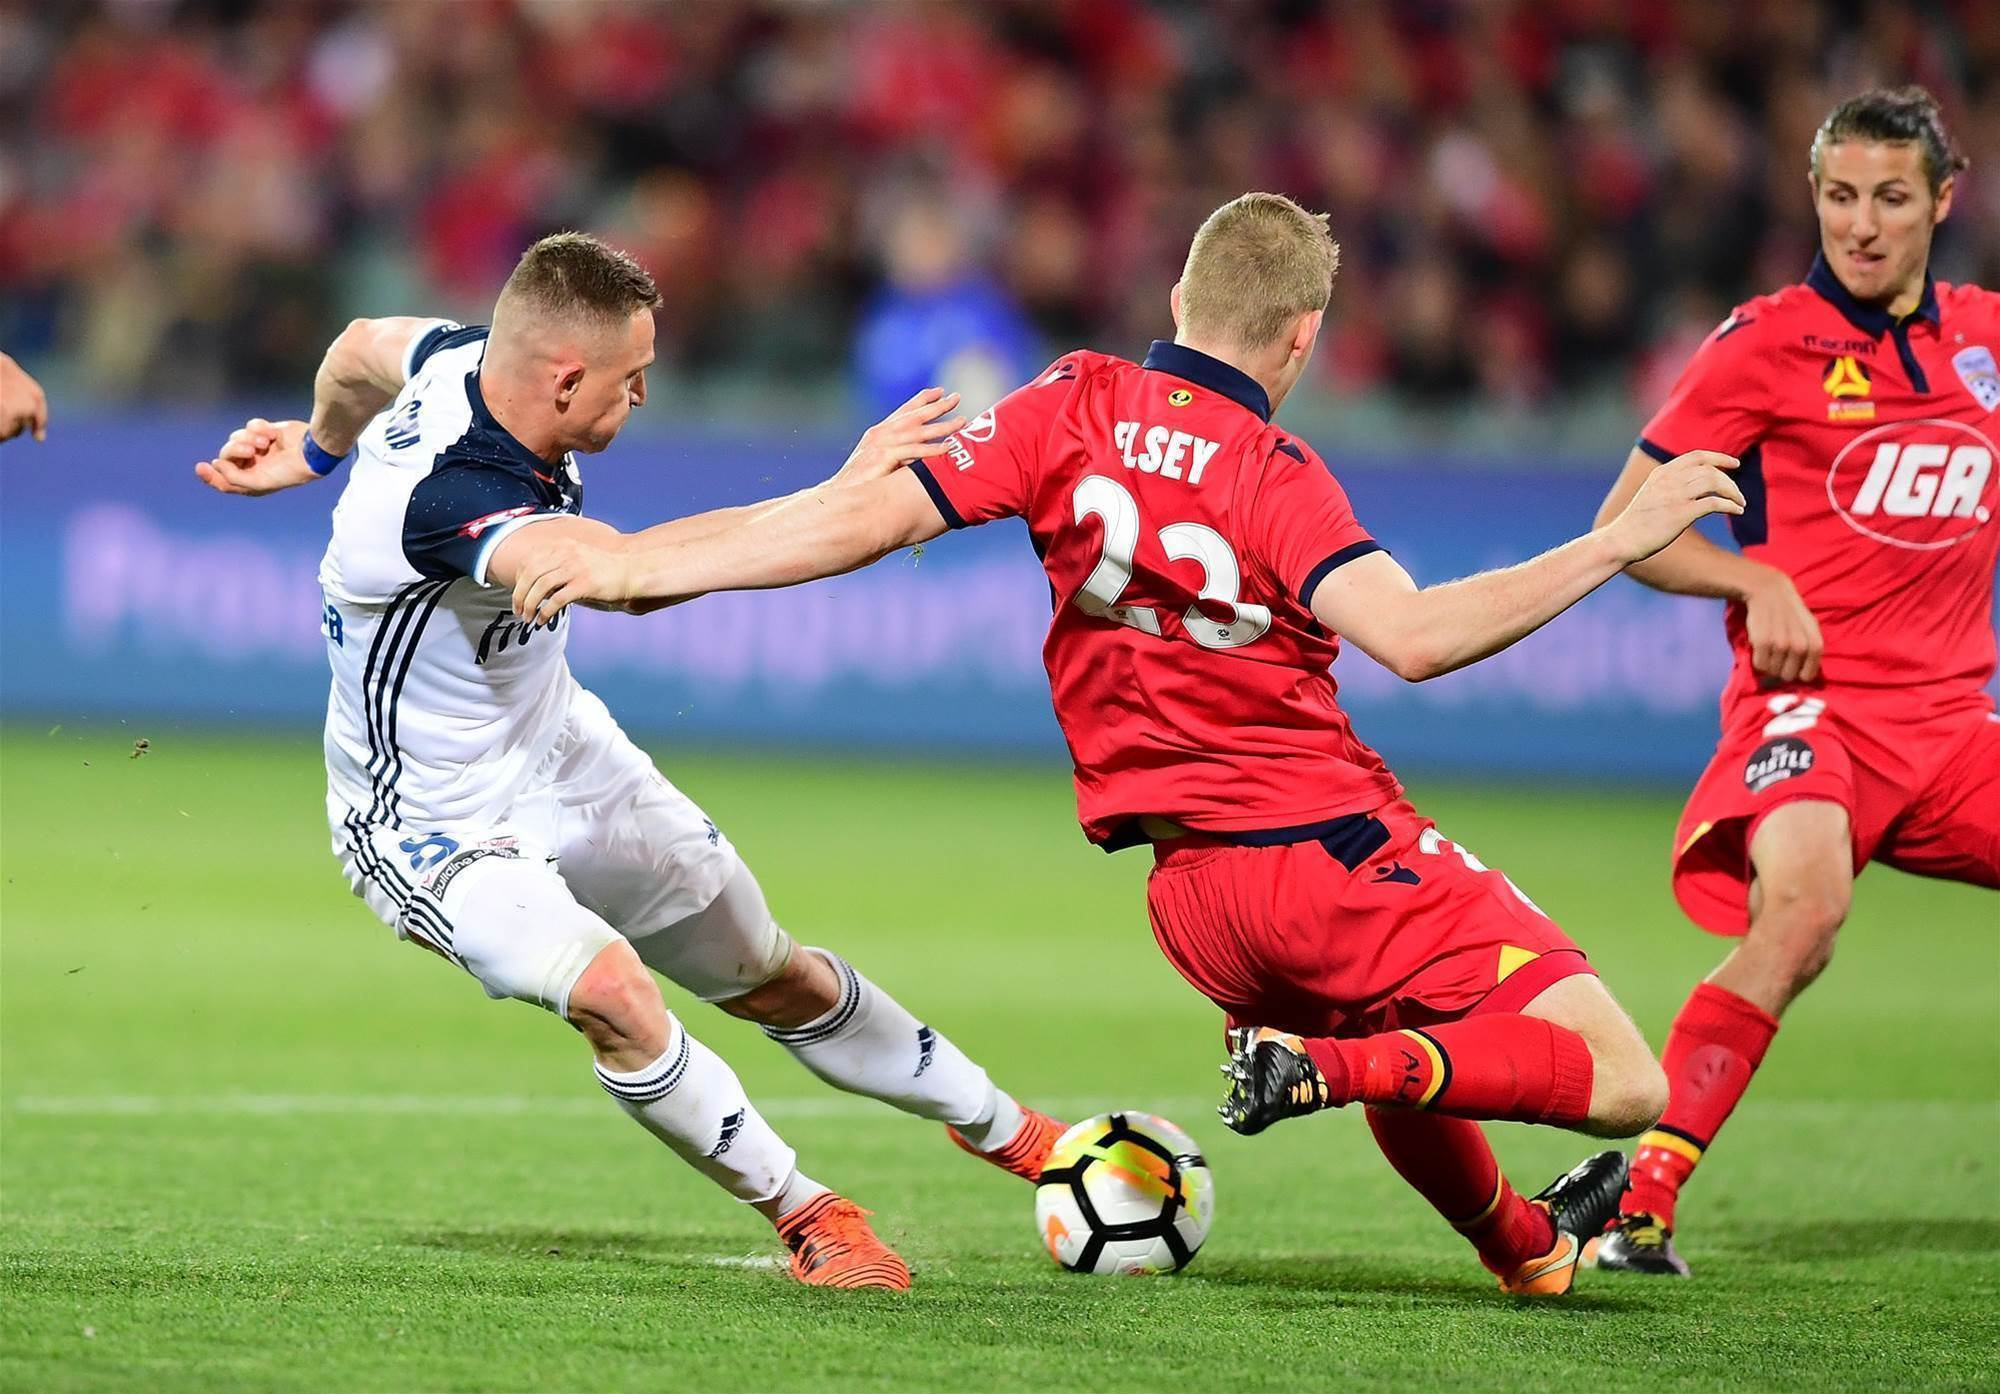 Adelaide v Victory player ratings